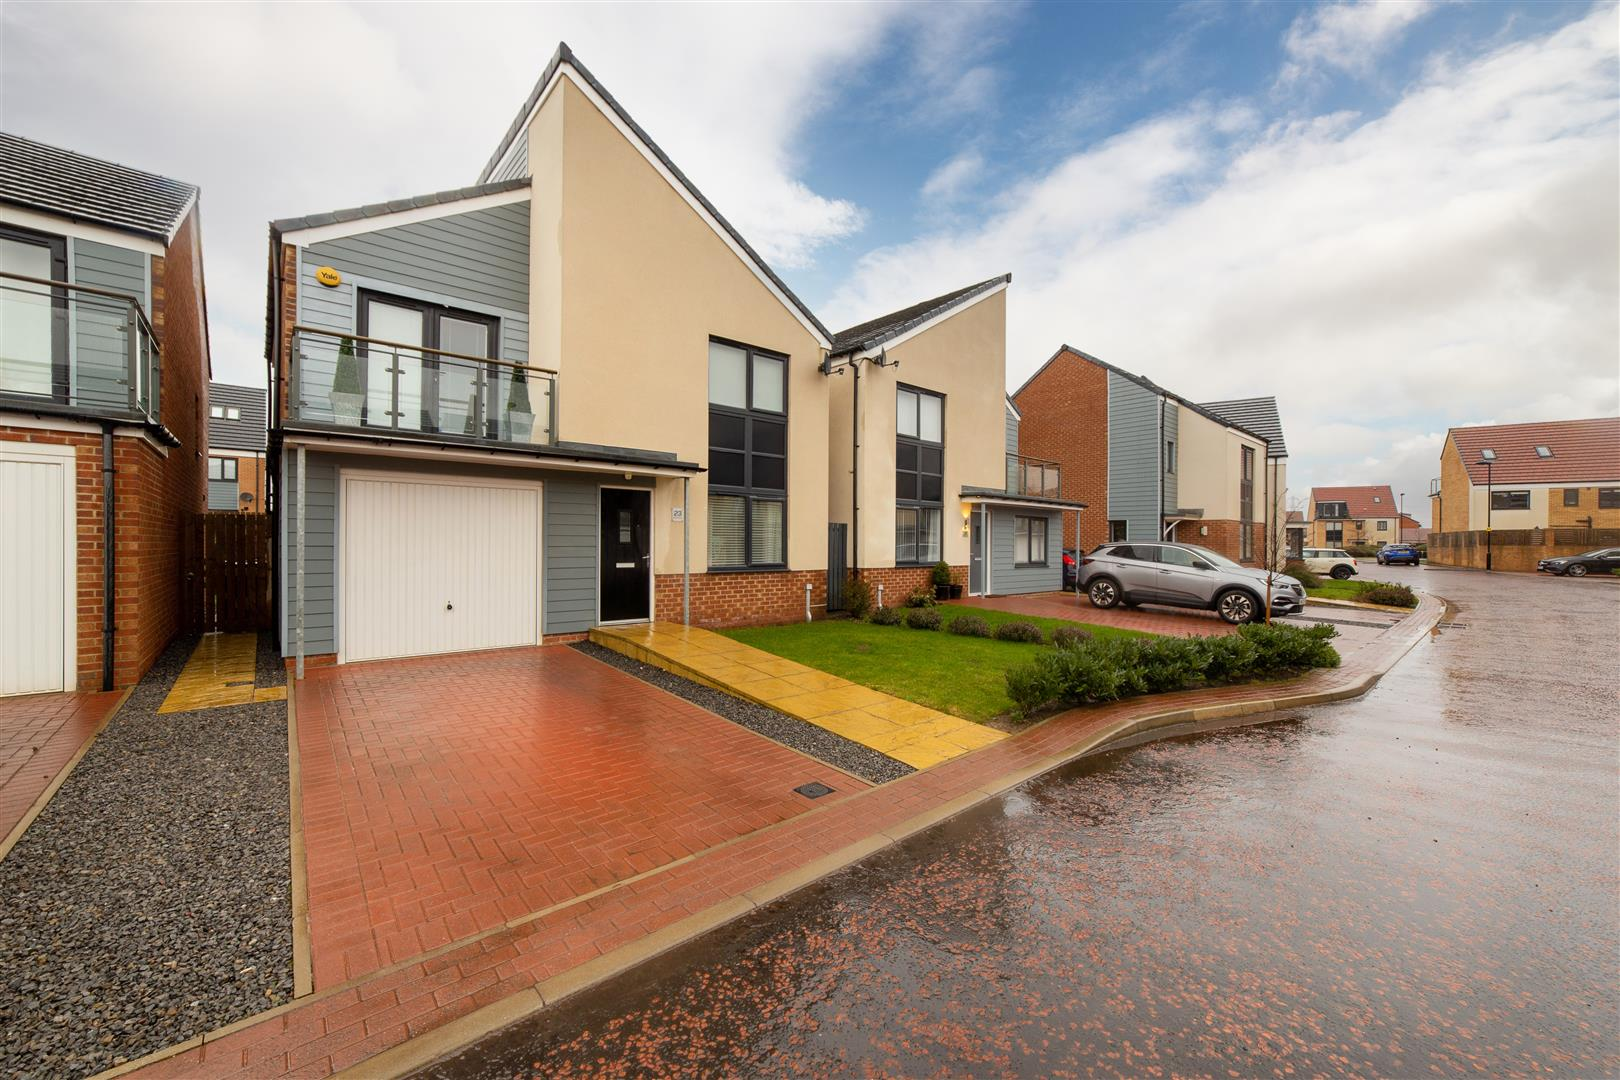 4 bed detached house for sale in Newcastle Upon Tyne, NE13 9DB, NE13